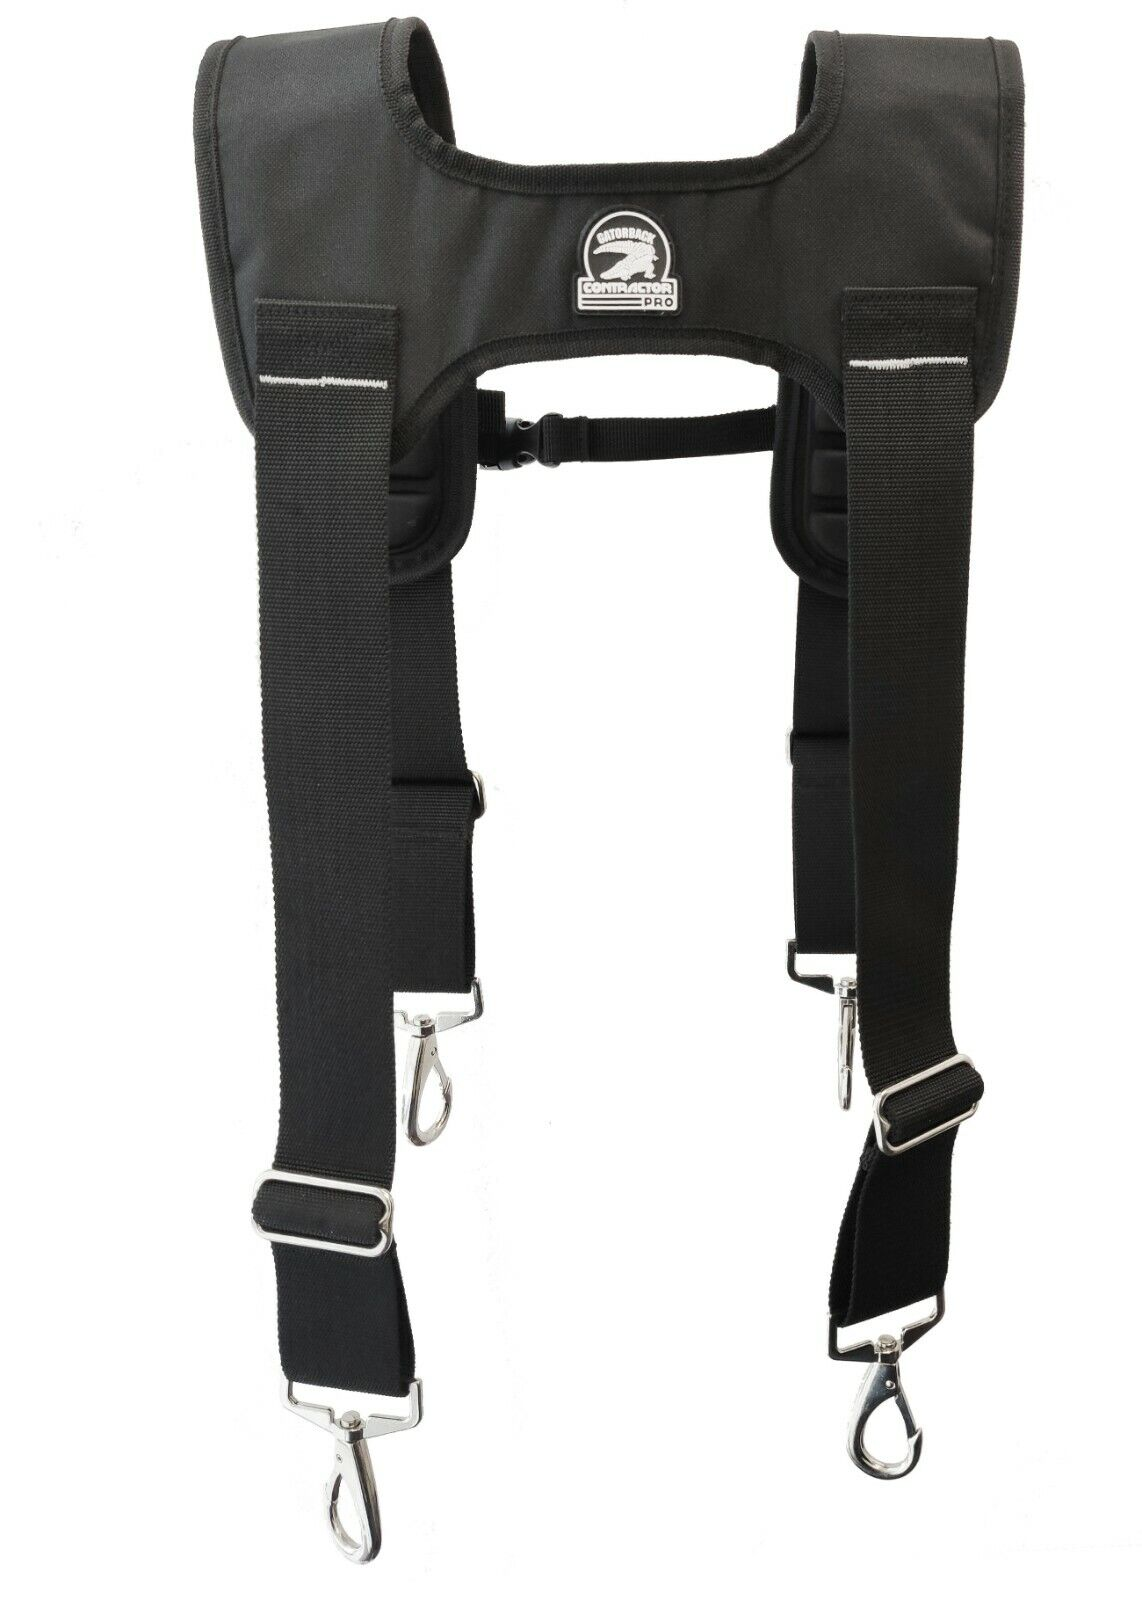 Gatorback B616 Deluxe Suspenders for Tool Belts. Molded Air-